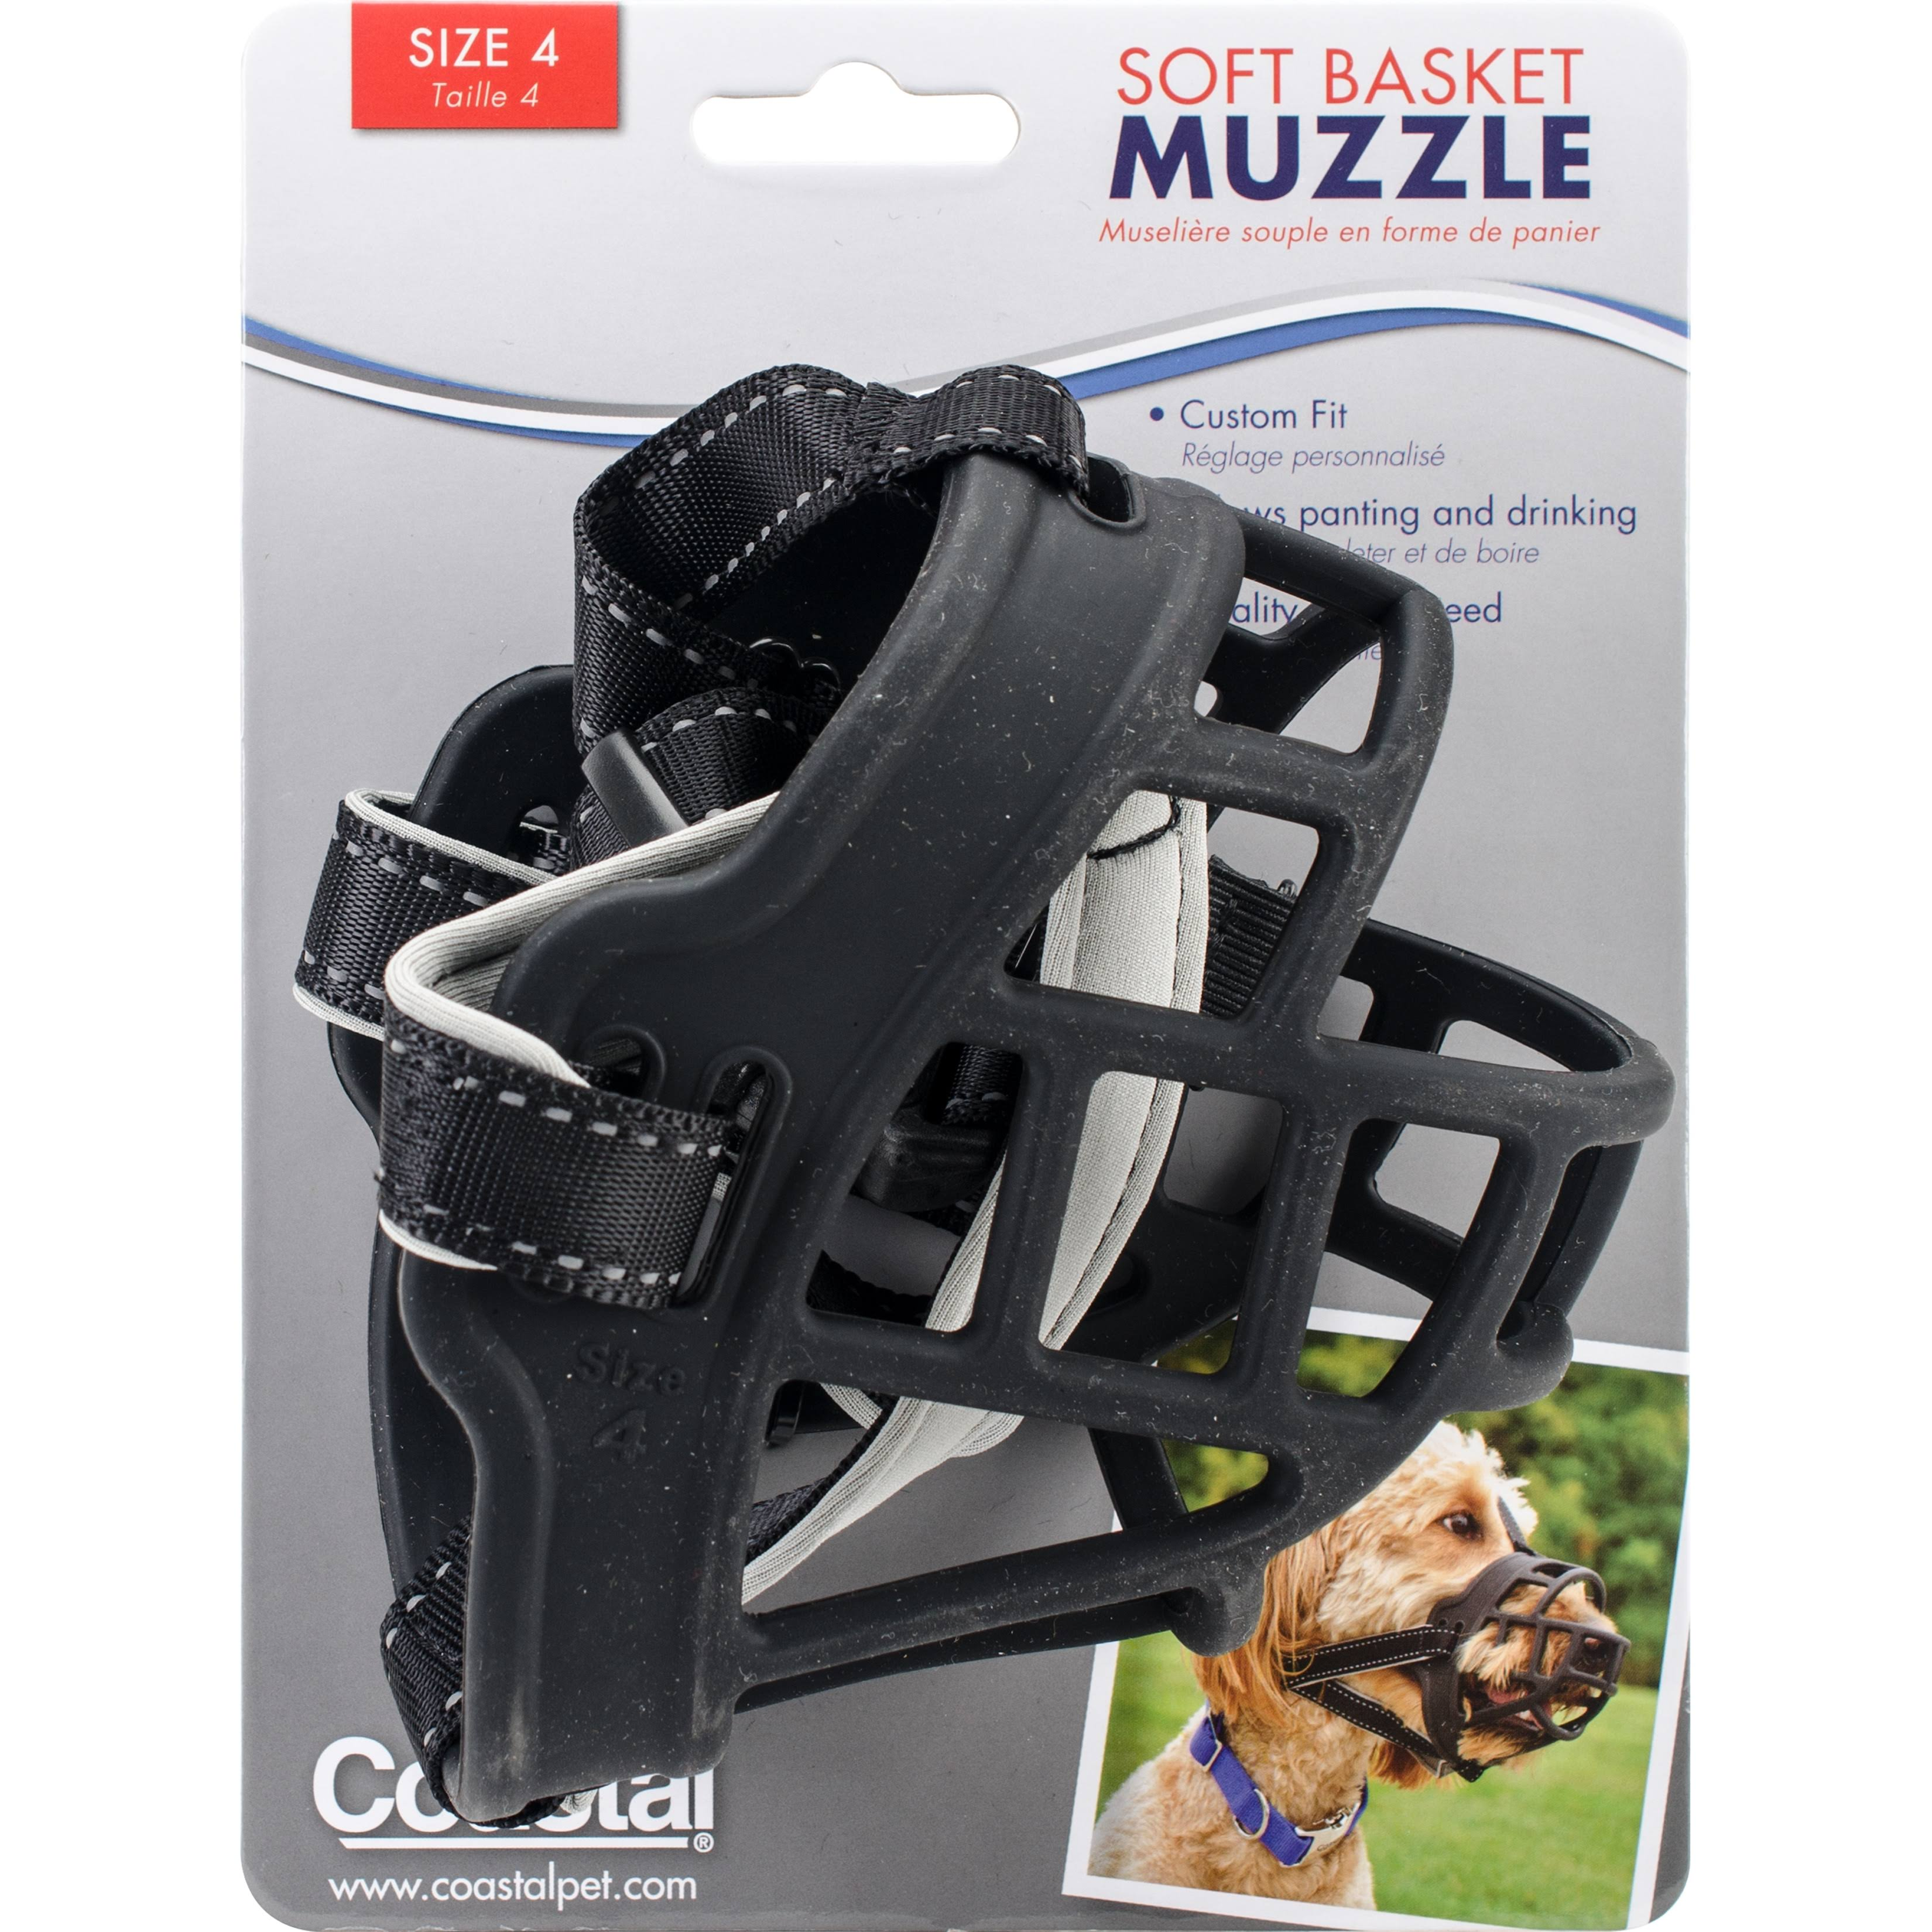 Coastal Soft Basket Muzzle